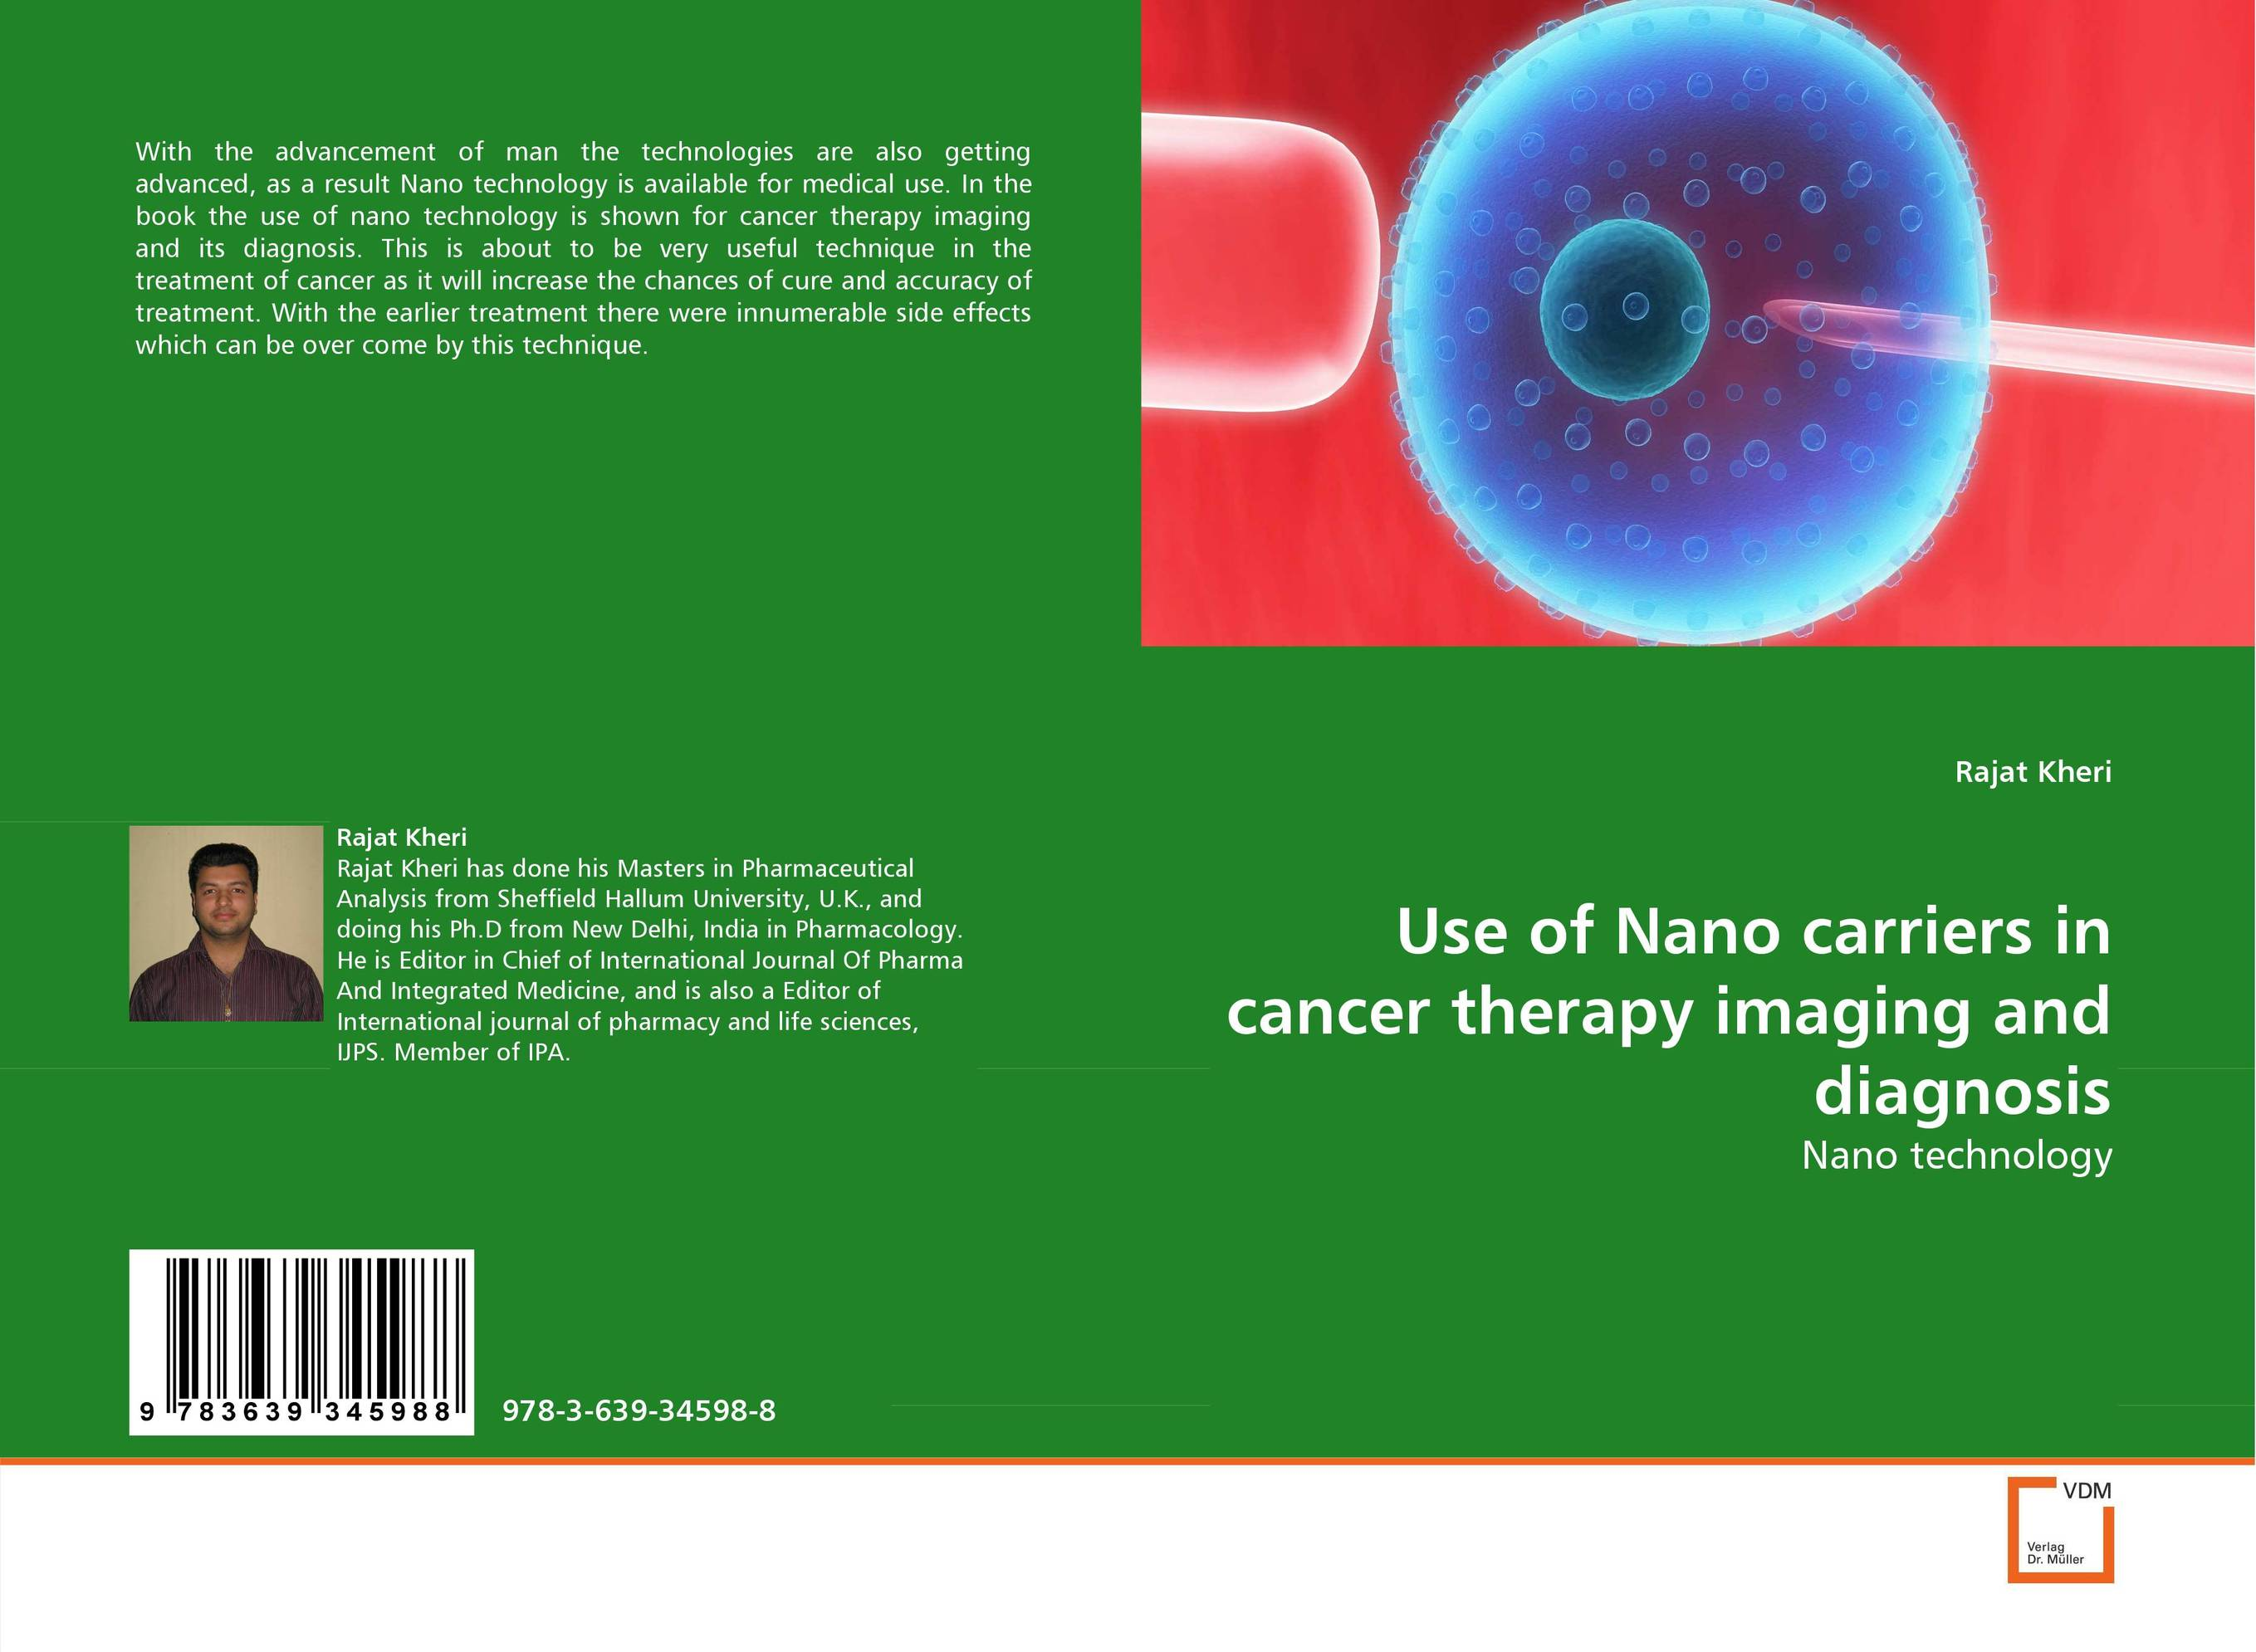 Use of Nano carriers in cancer therapy imaging and diagnosis viruses cell transformation and cancer 5